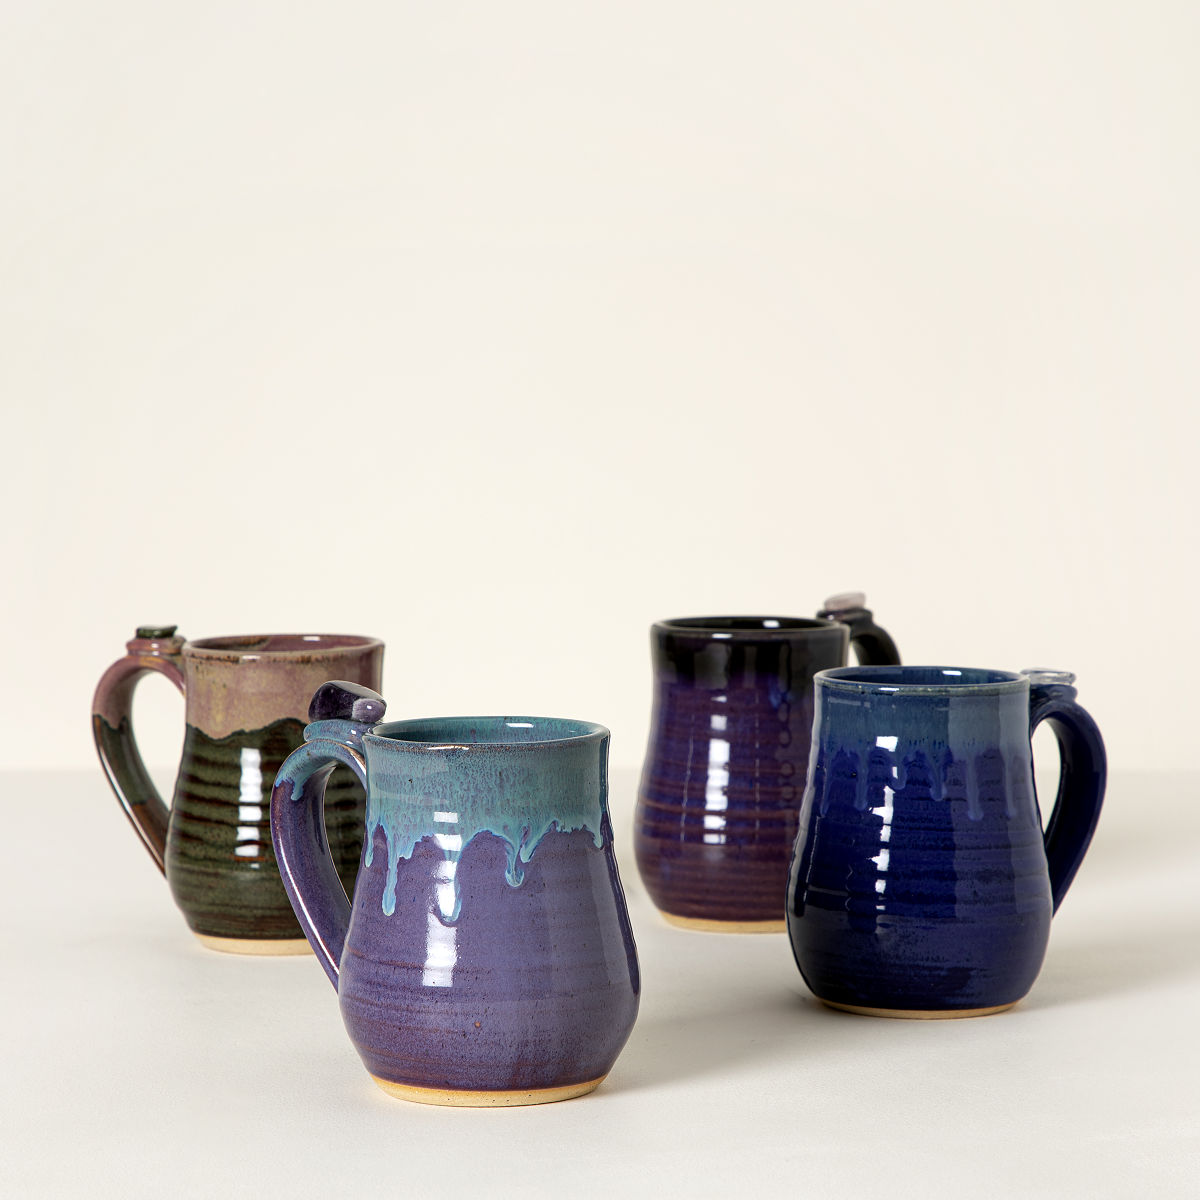 Phantasy Healing Stone Mugs Thumbnail Healing Stone Mugs Ceramic Quartz Uncommongoods Pottery Mugs Without Handles Making Pottery Mug Handles furniture Pottery Mug Handles